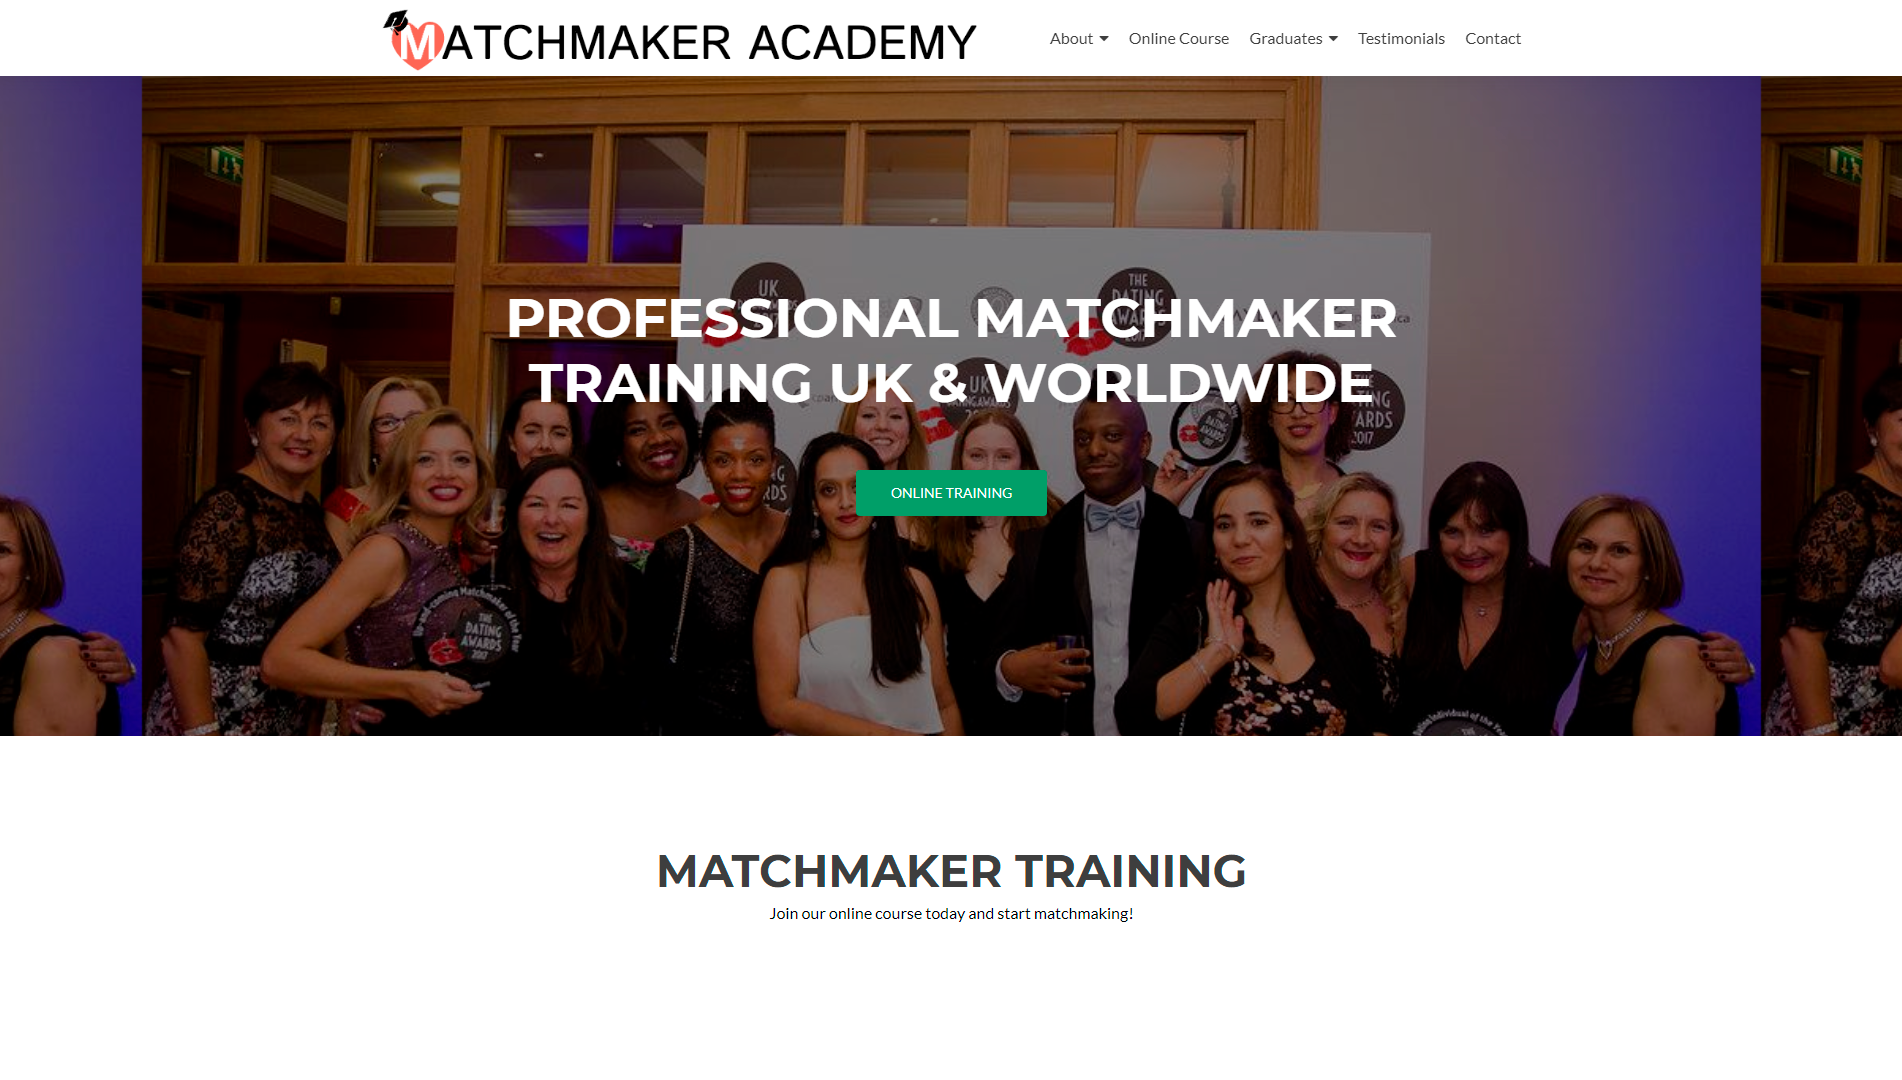 Caroline Brealey, founder of Mutual Attraction andMatchmaker Academy, shares with us today how Matchmaker Academy helps starting matchmakers to learn a great deal about the industry. Explore many learning opportunities and education paths on becoming a professional matchmaker. Study the best matchmaking practices with hands on experience, including video conferences, personal support and growing library of industry leading guides and tips. To learn more about professional matchmaking courses visitMatchmaker AcademyandMatchmaker Academy Online. Or get in touch with Caroline via email to schedule your first discovery callcaroline@mutualattraction.co.uk